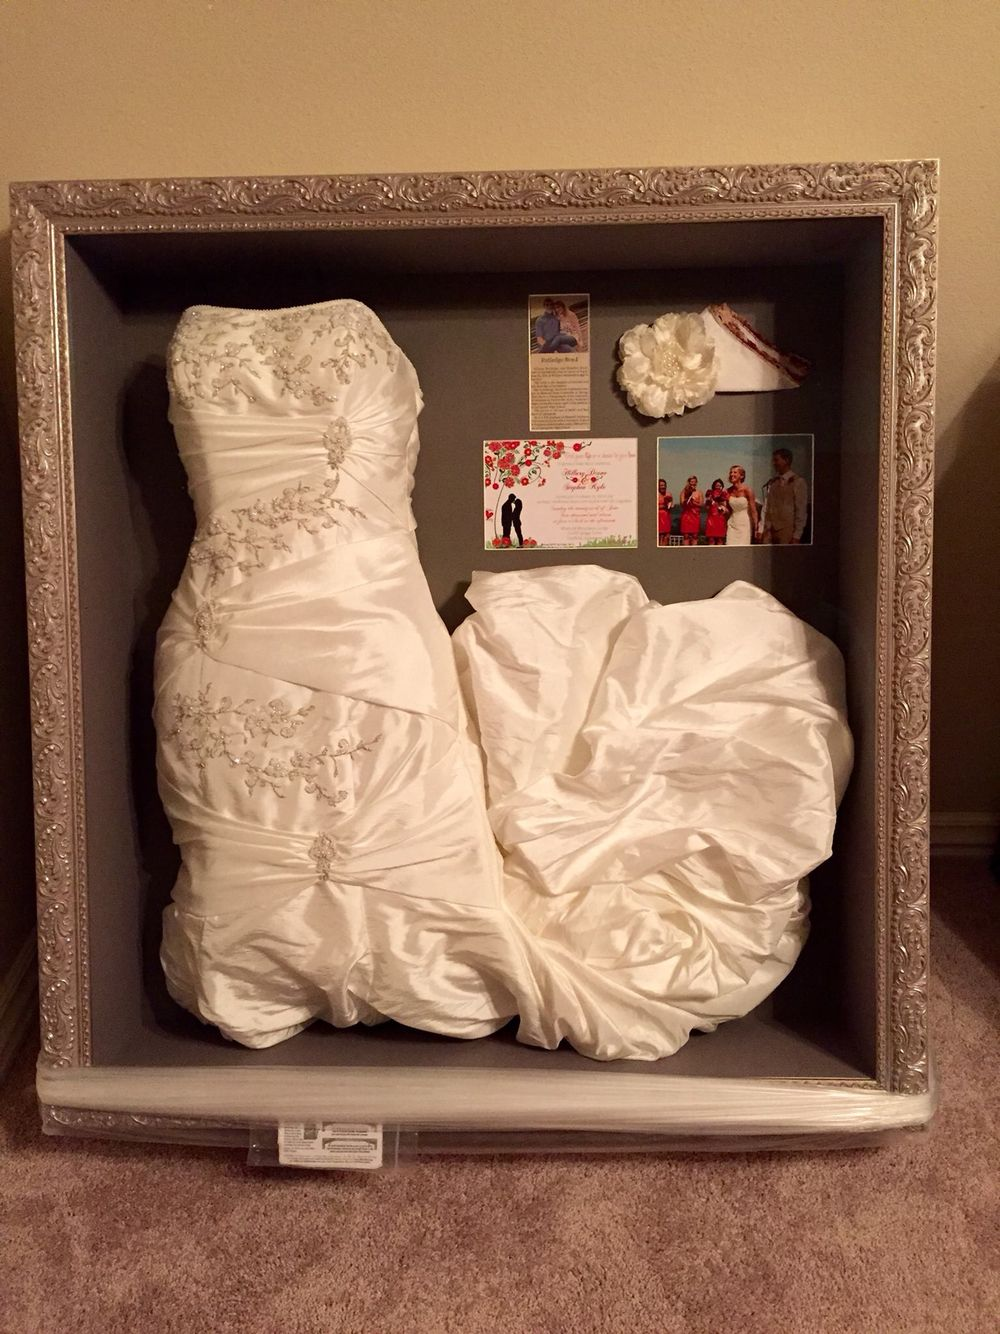 Preserve And Display Your Wedding Dress In A Shadow Box   What A Neat Idea!